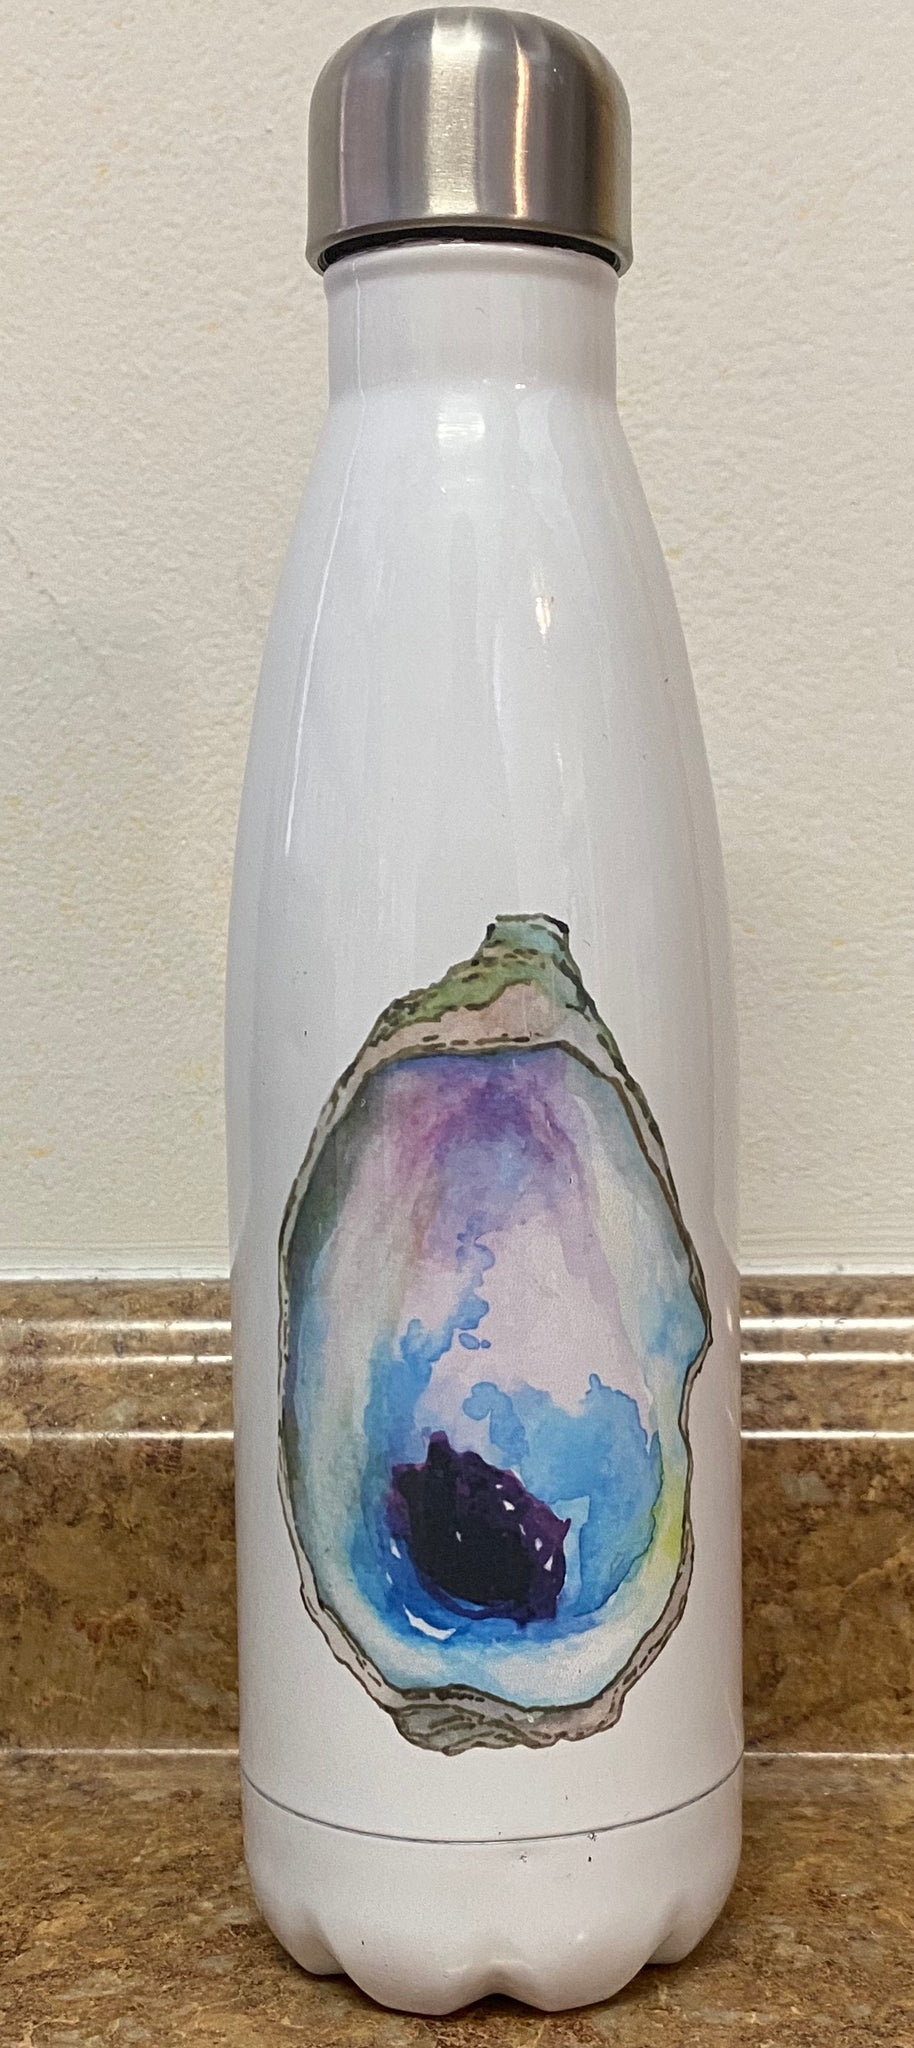 Original Art Water Bottles by Amy Shippy